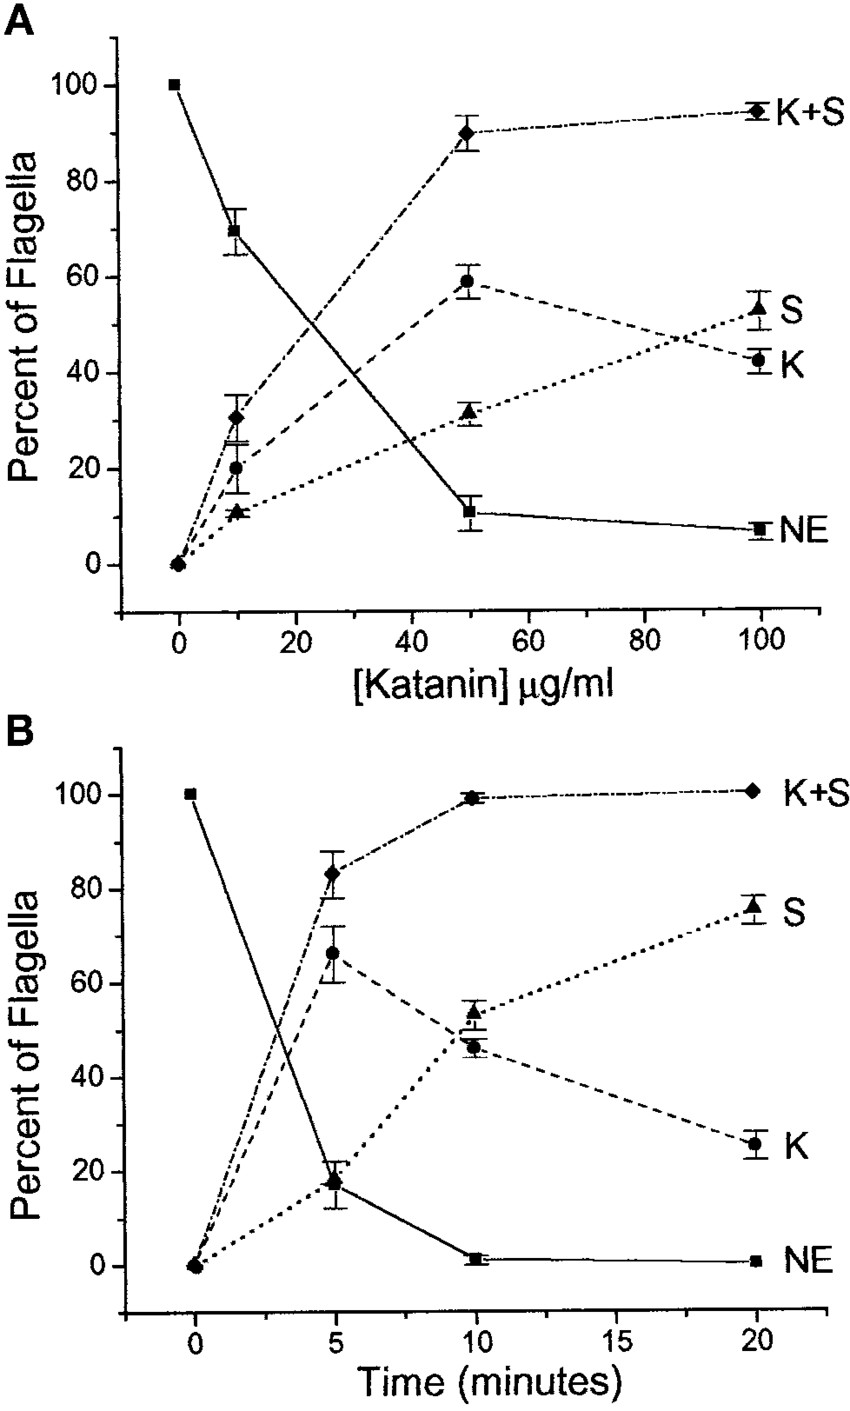 medium resolution of katanin mediated breakage of chlamydomonas flagella is both dose and time dependent a